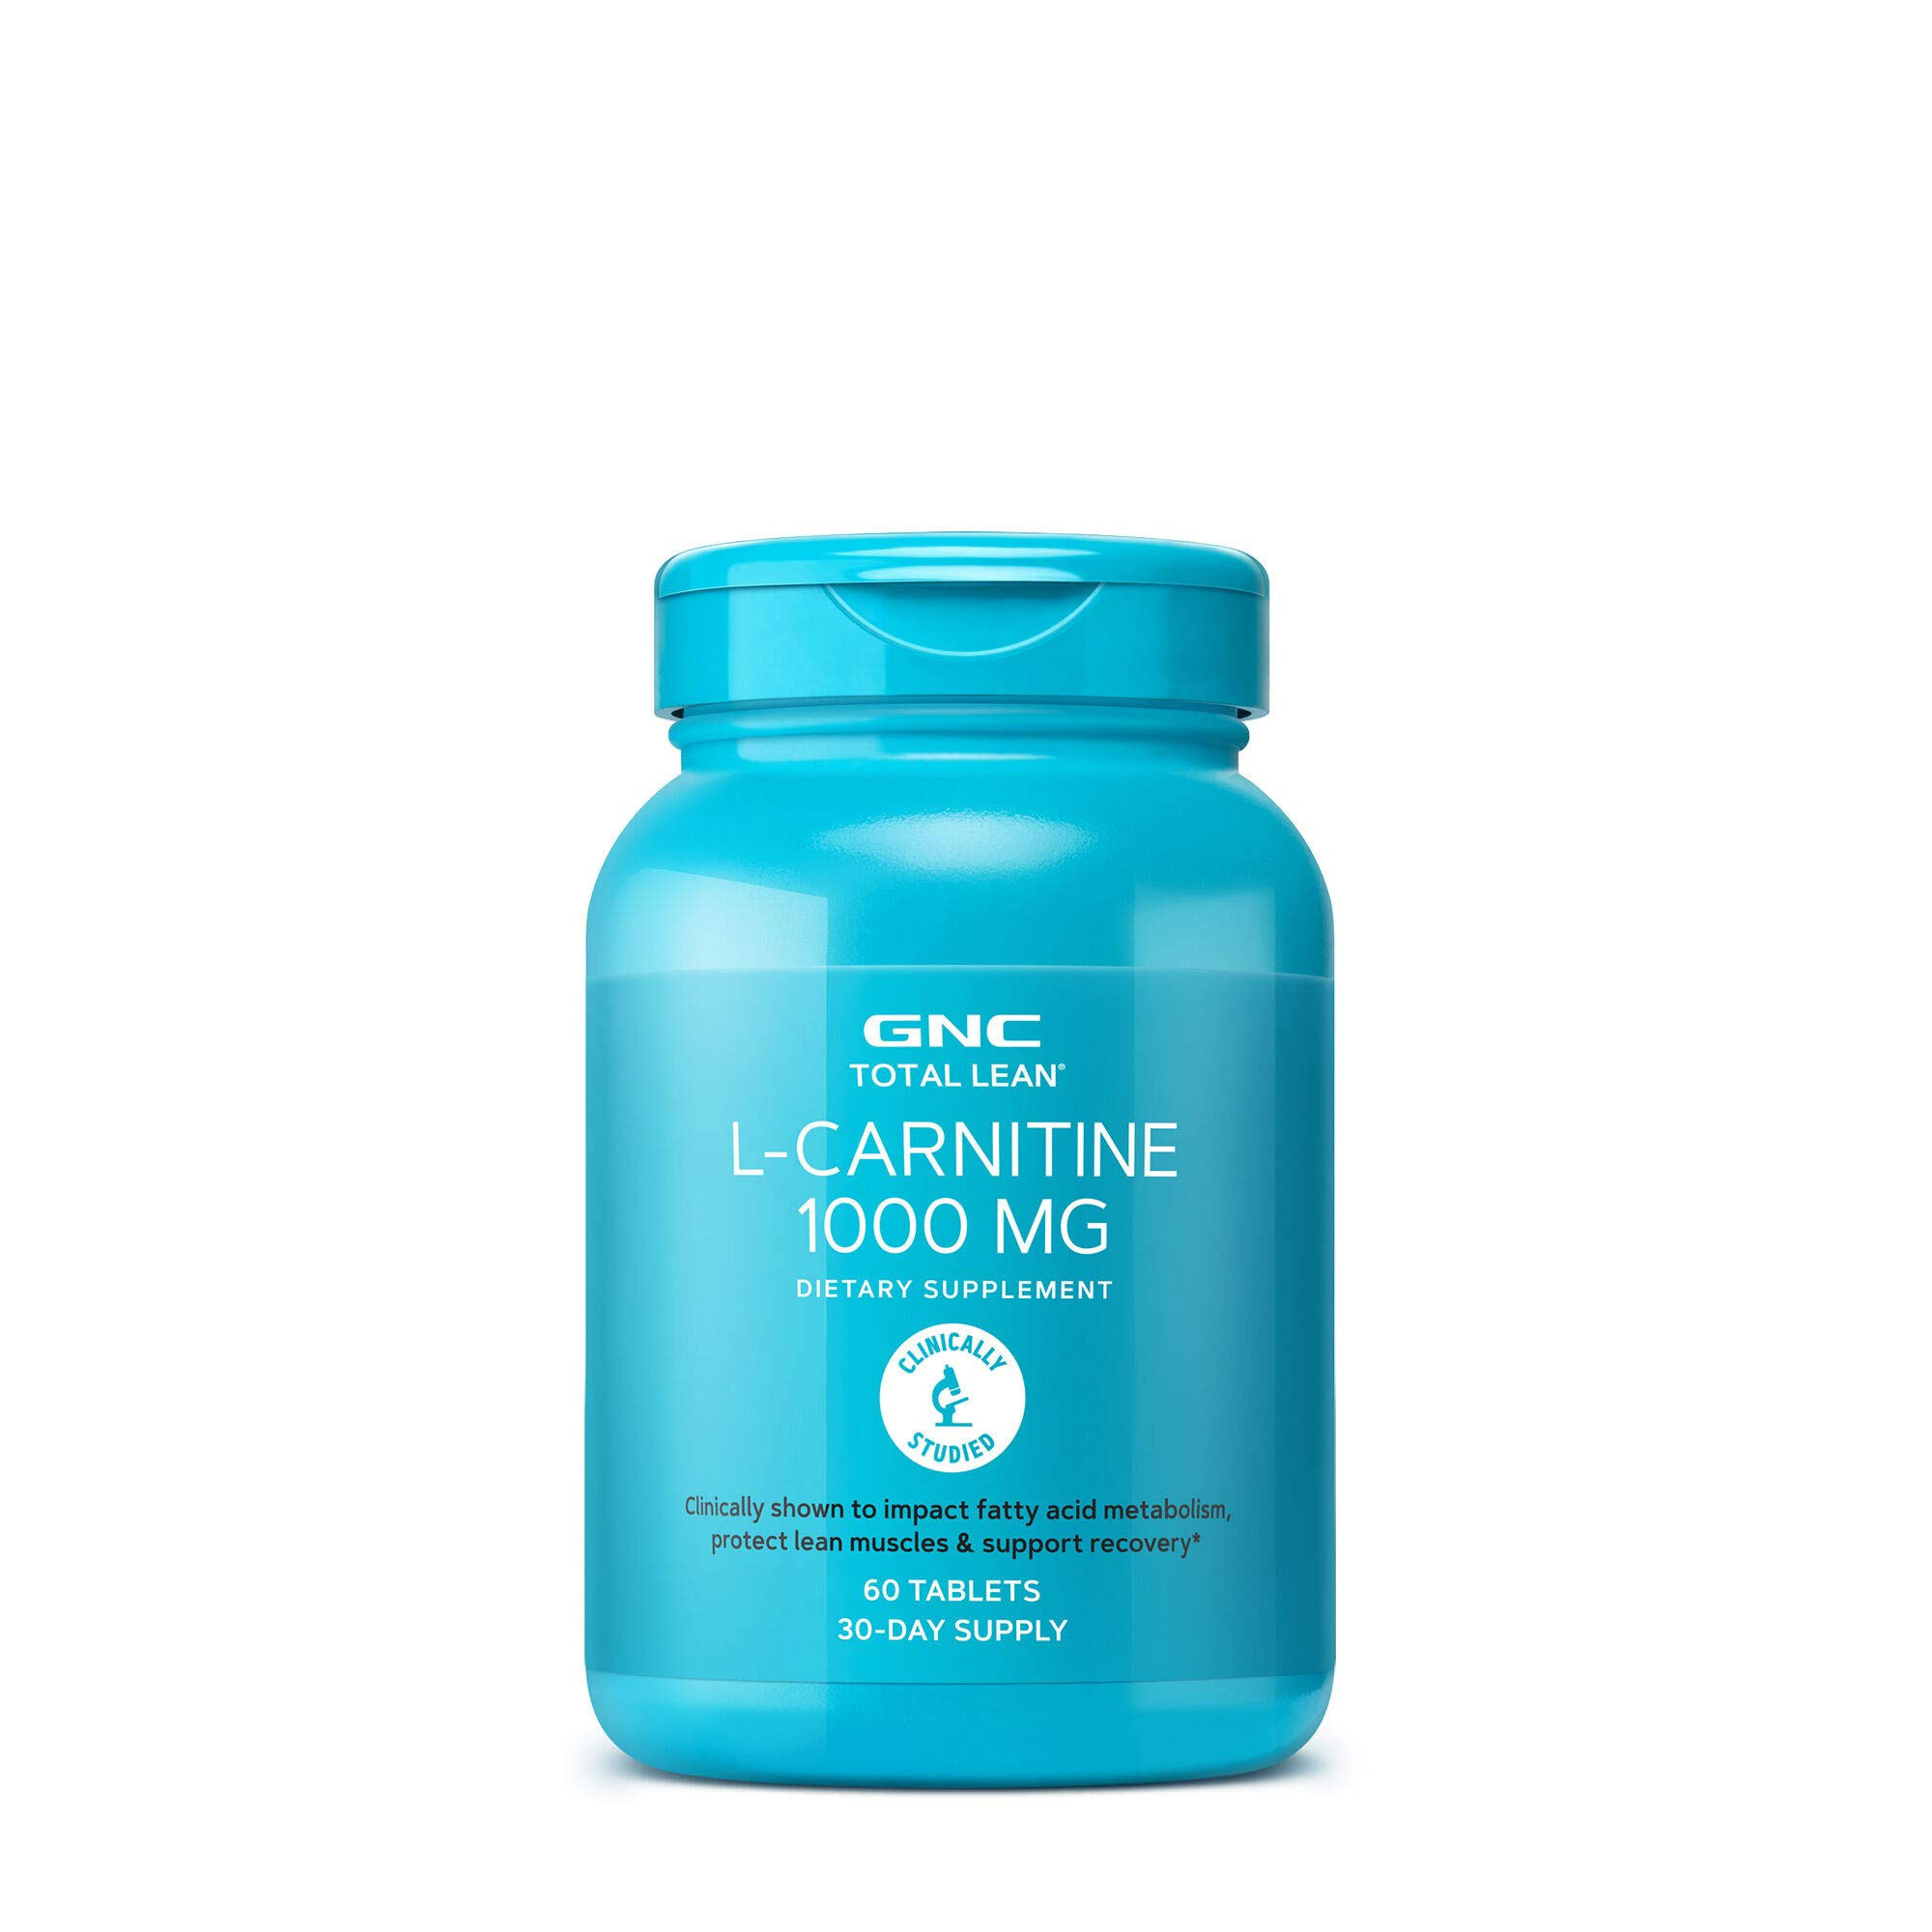 GNC Total Lean L-Carnitine 1000mg, 60 Tablets, Supports Recovery and Lean Muscle Growth